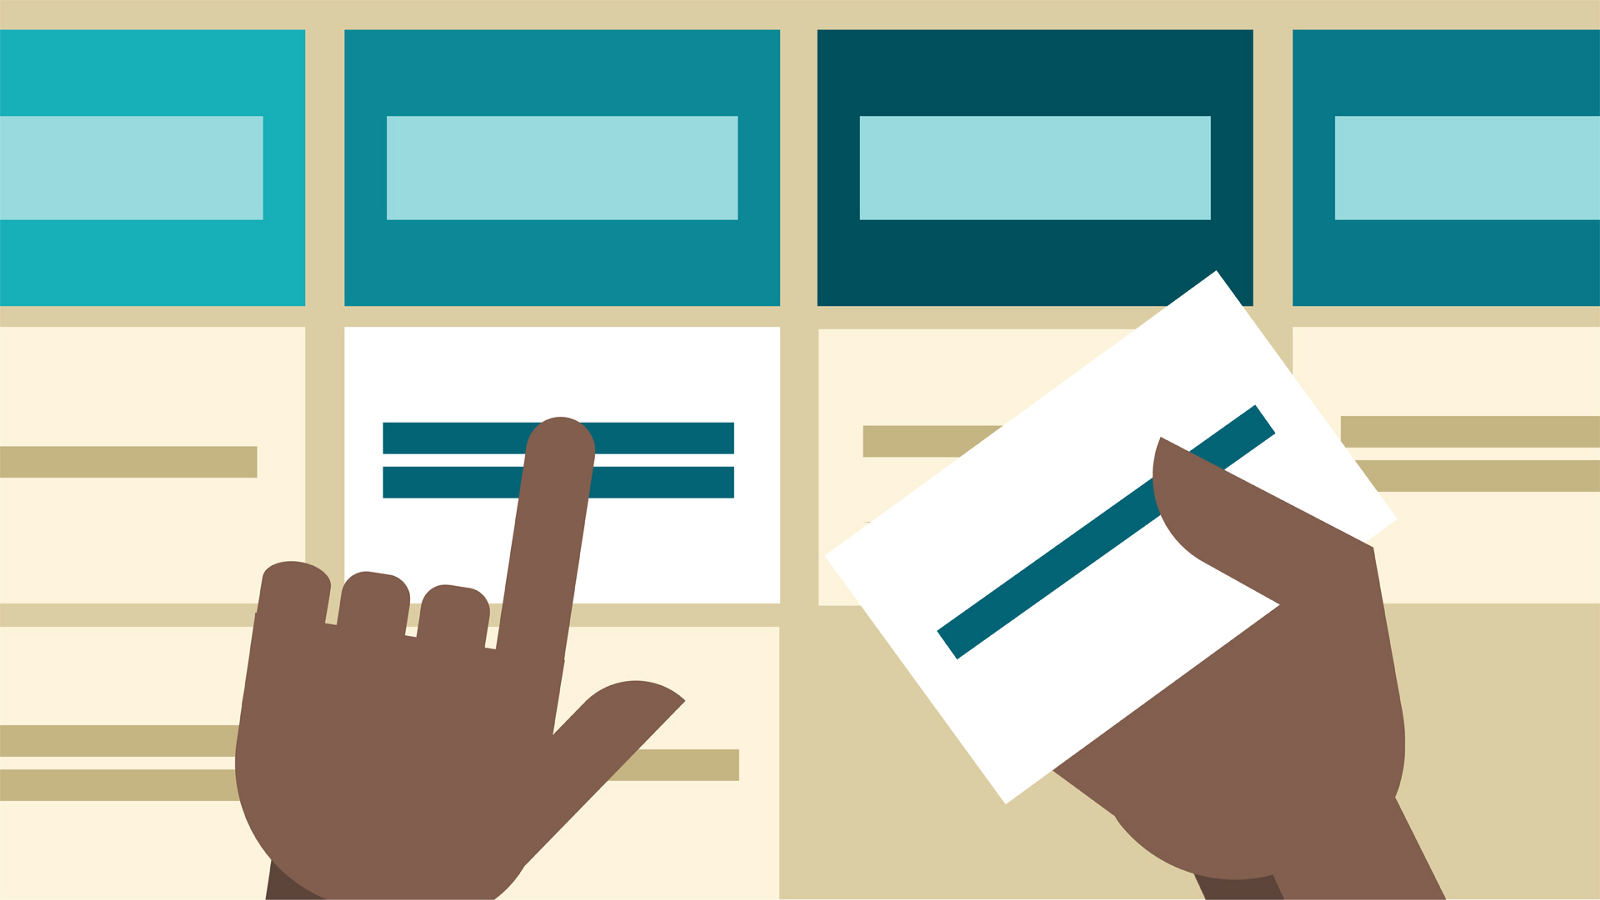 improving information architecture through card sorting